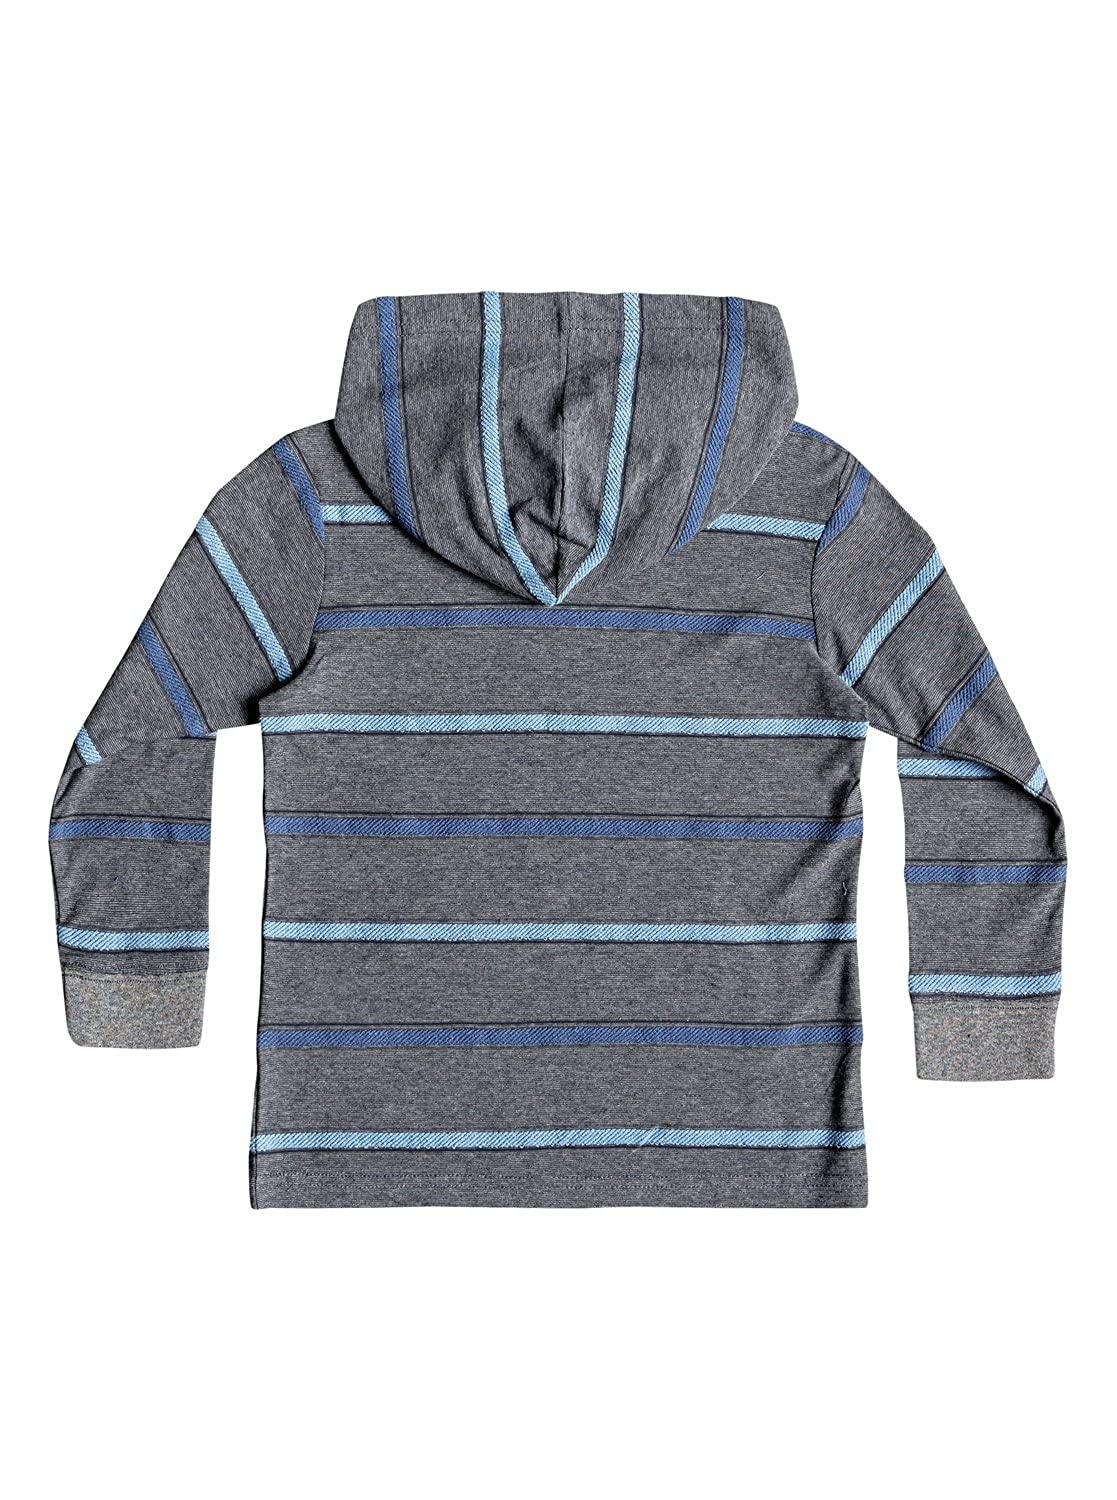 QUIKSILVER Boys Ginza Skyrise Youth Hooded Shirt